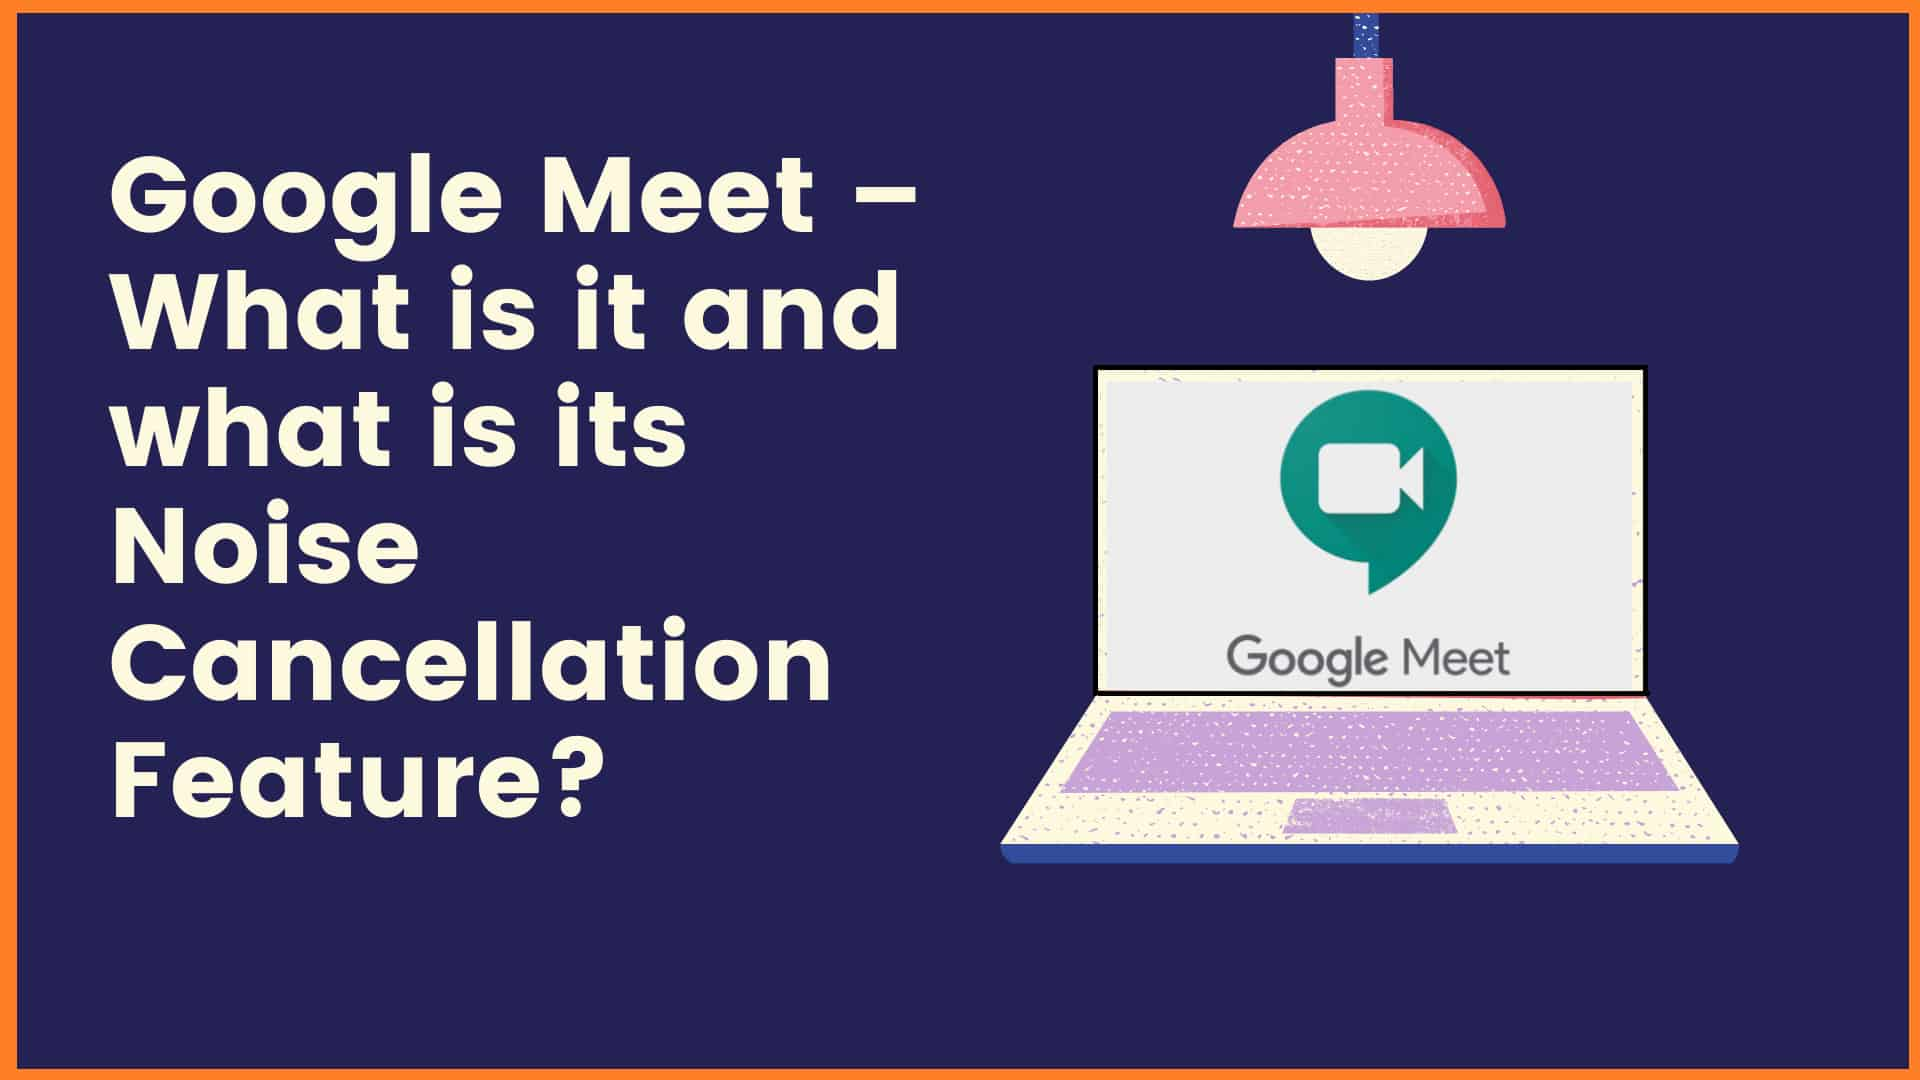 Google Meet – What is it and what is its Noise Cancellation Feature?